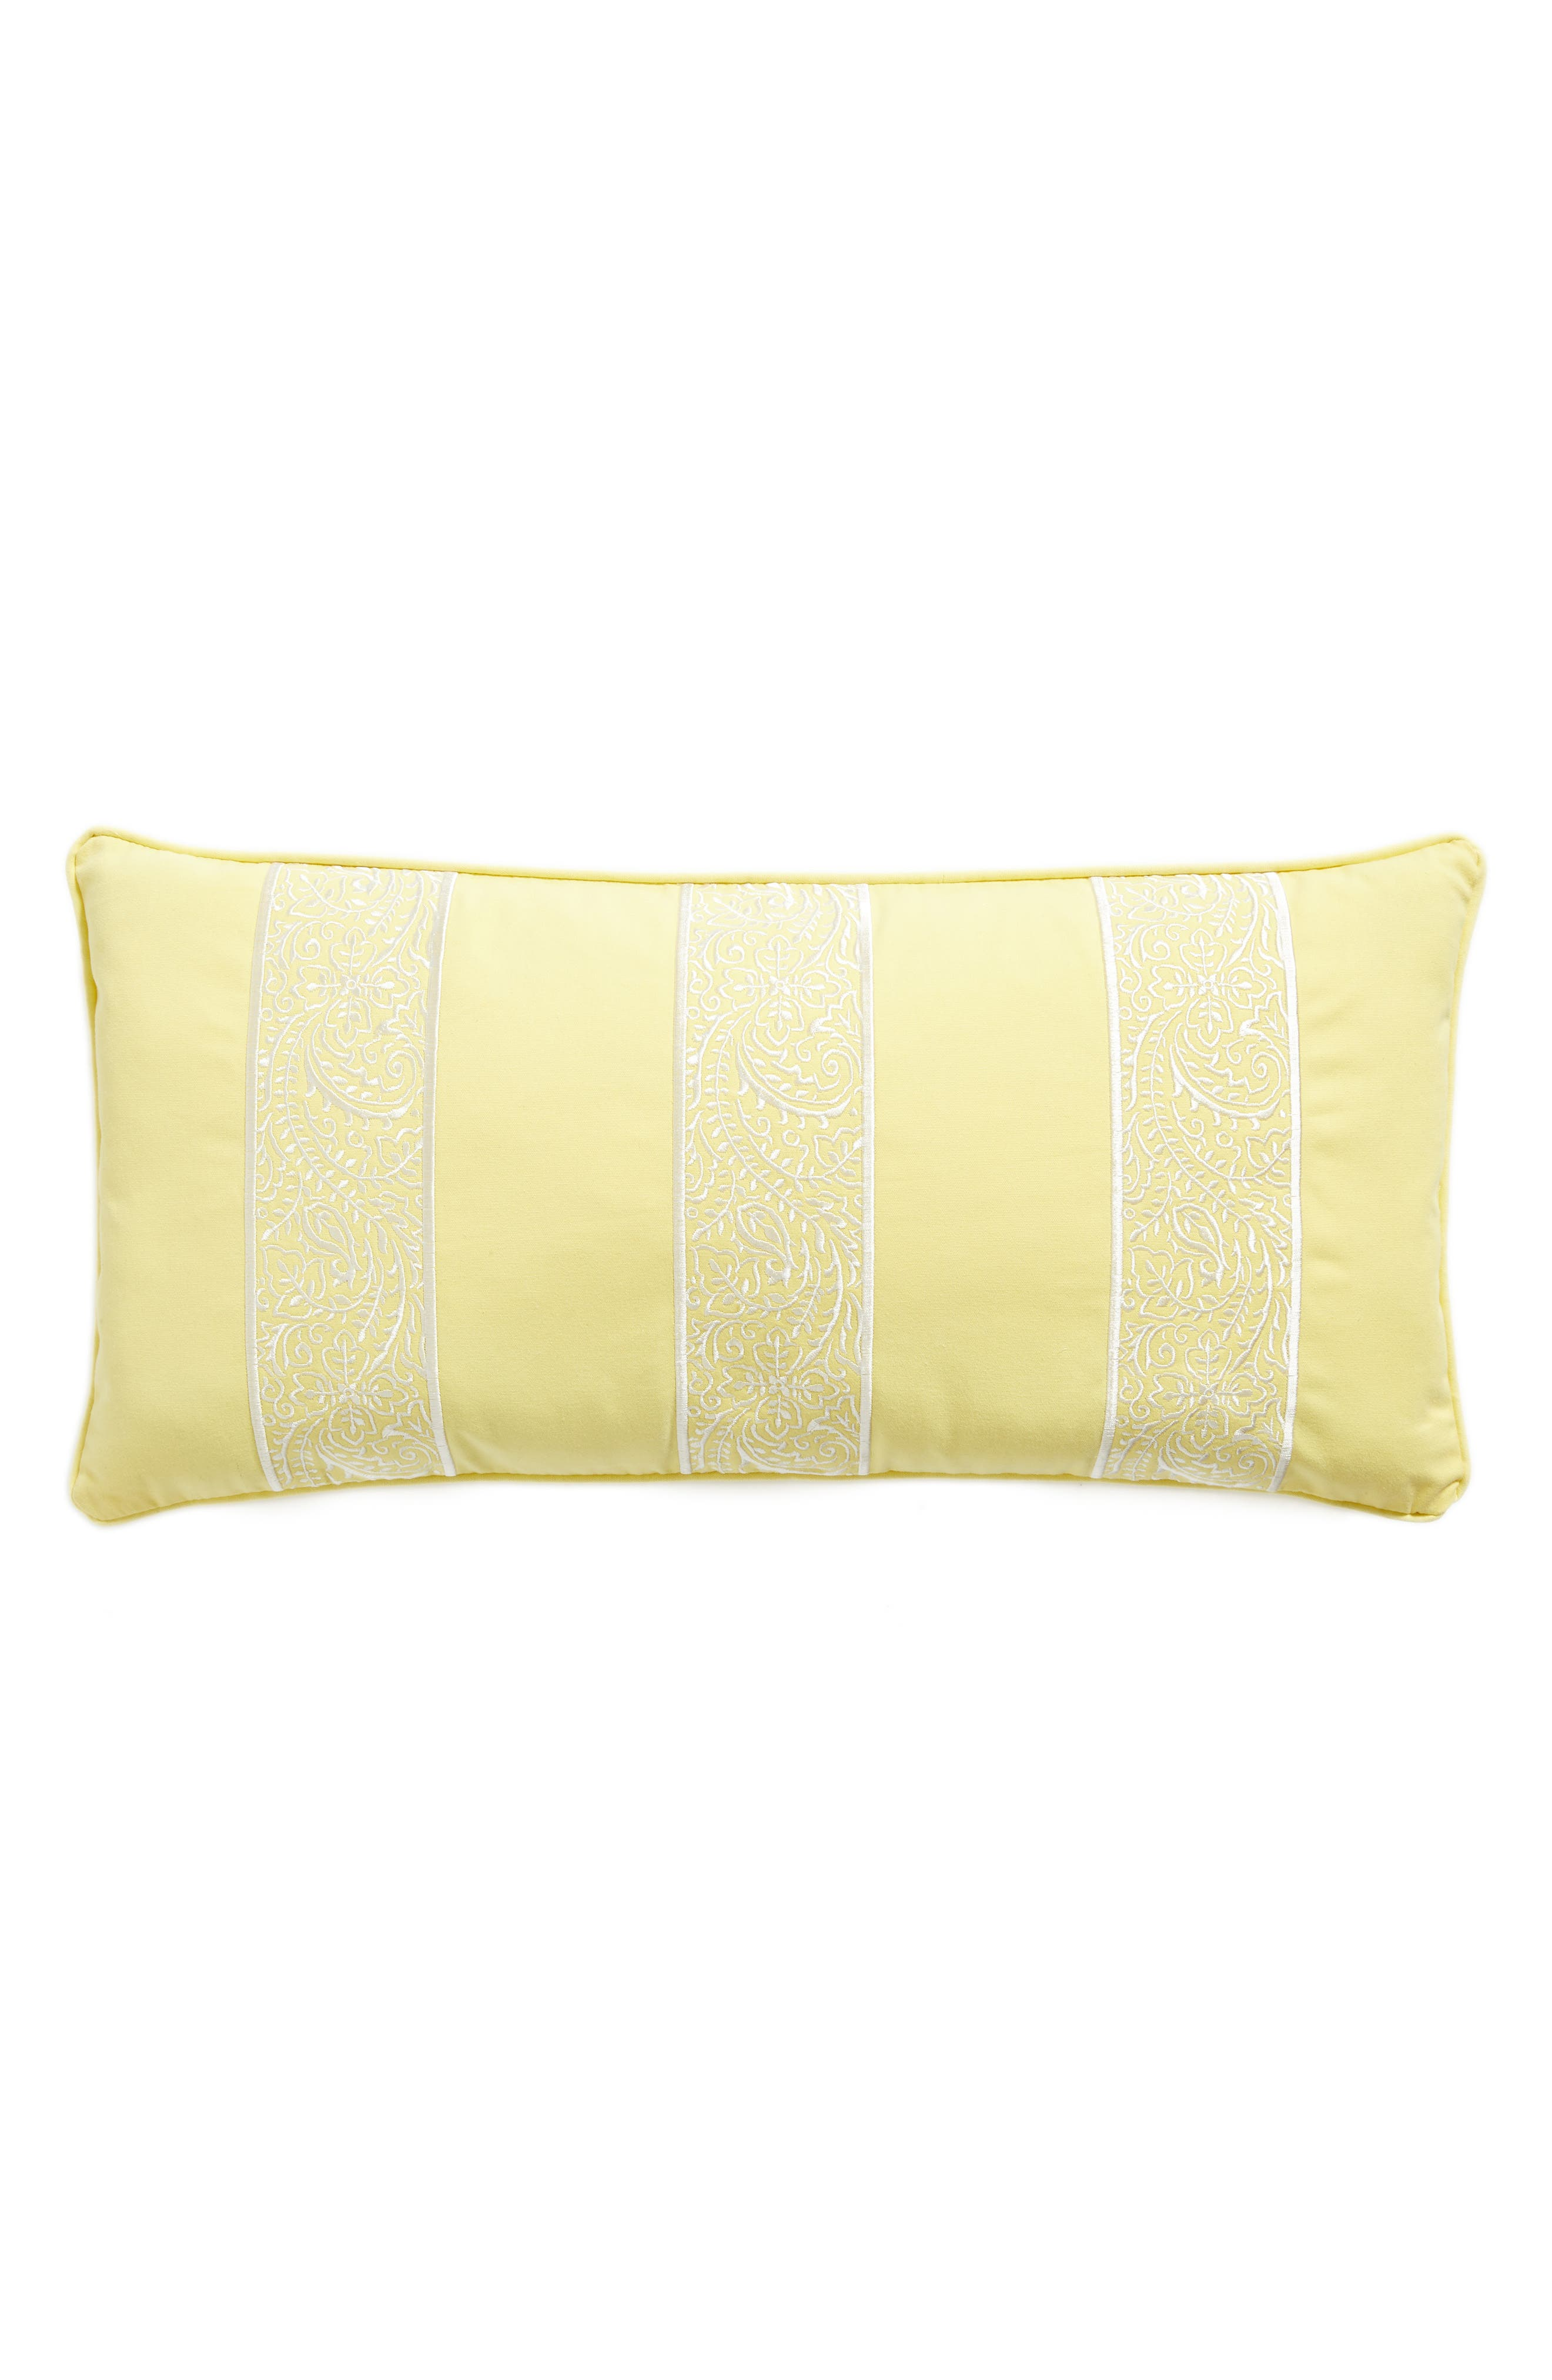 Remie Embroidered Pillow,                             Main thumbnail 1, color,                             700